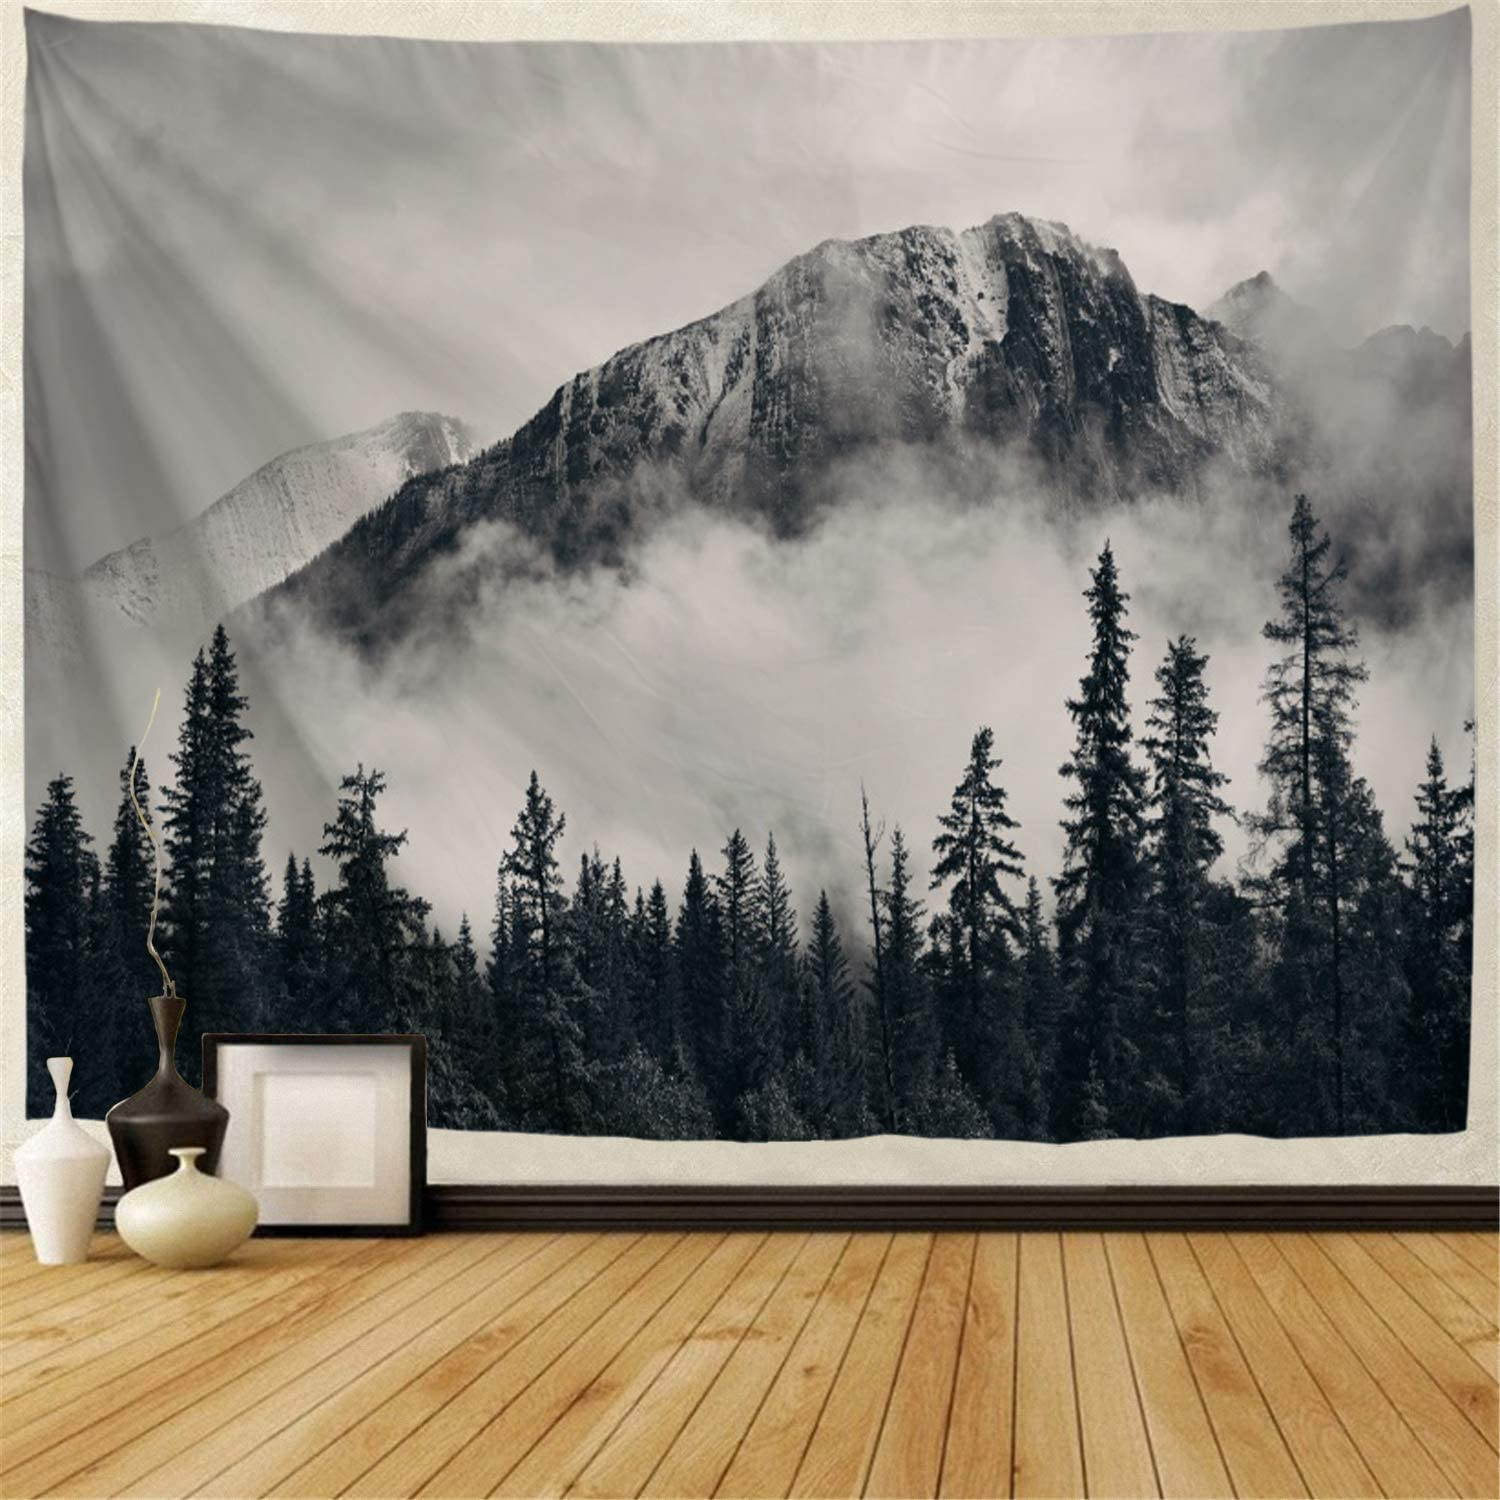 BJHAP Nature Tapestry Black and White Forest on Fog Mountains Tapestry Wall Hanging Mysterious Tree Tapestry Landscape Scenery Tapestry Art Home Decor for or Living Room Bedroom Dorm 60 X 51 Inches